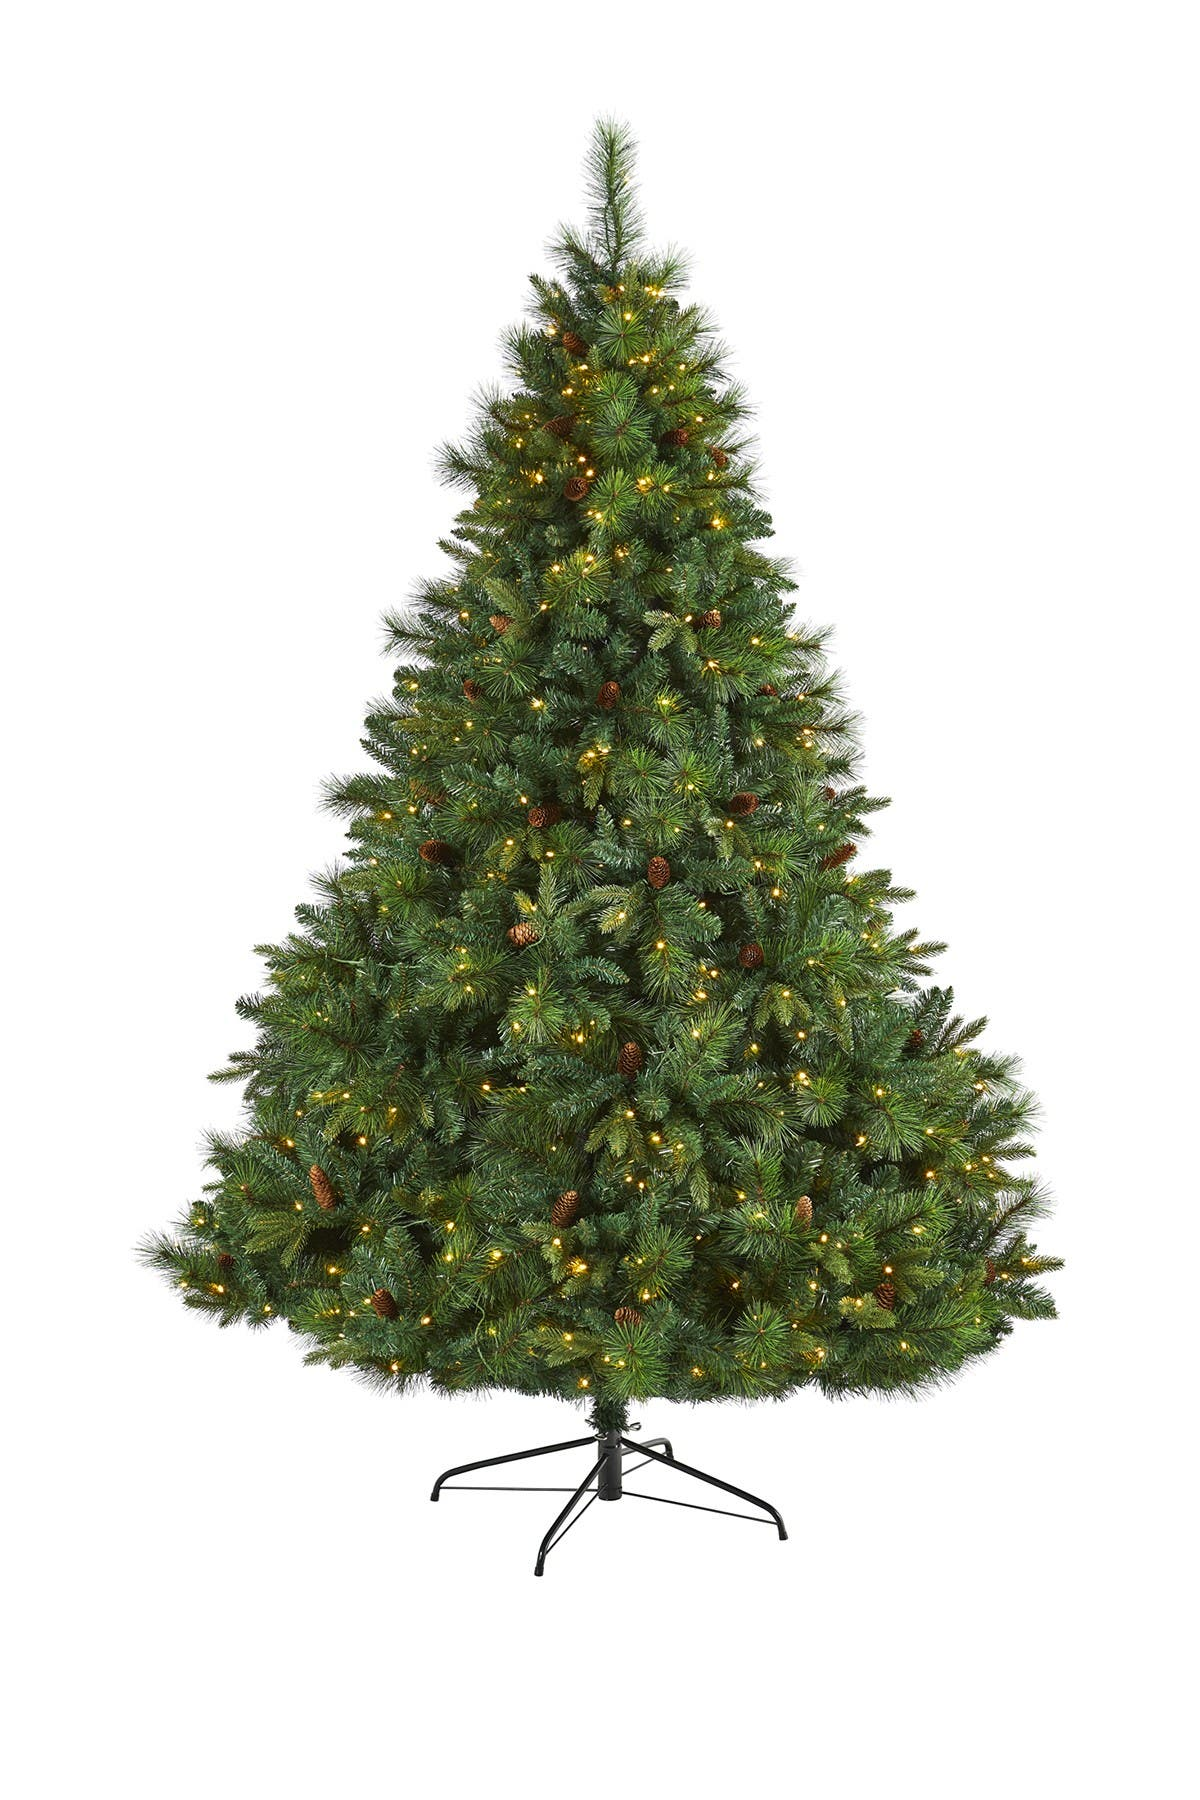 Image of NEARLY NATURAL 7.5ft. West Virginia Full Bodied Mixed Pine Artificial Christmas Tree